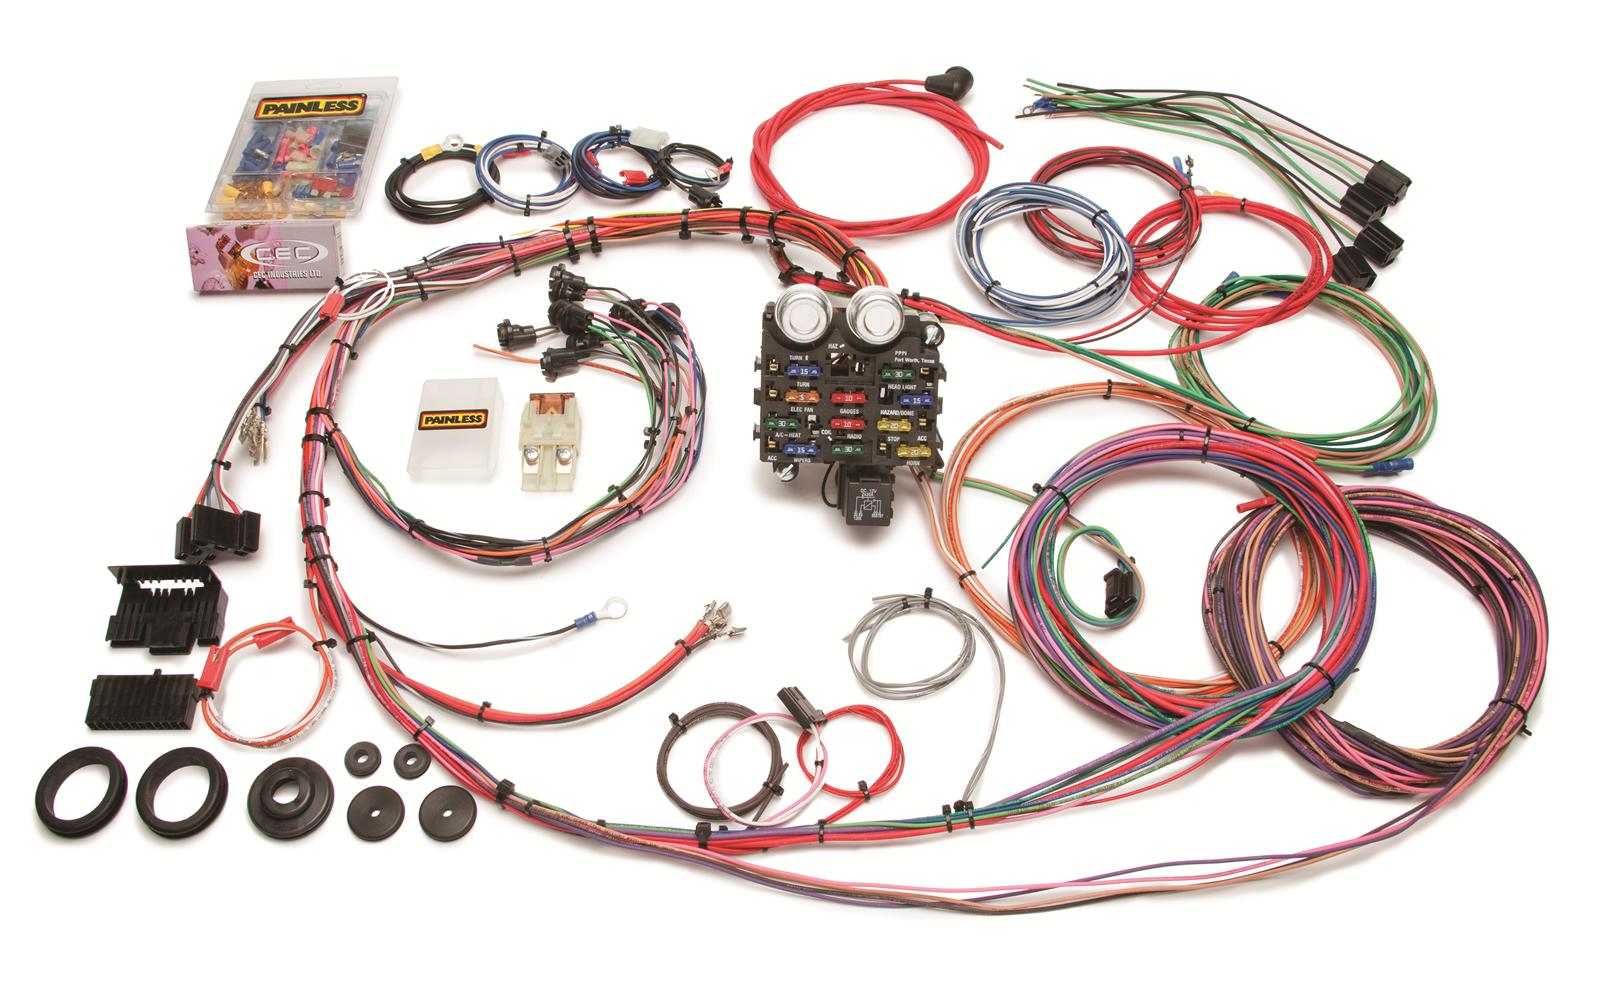 prf 10112_xl painless performance 19 circuit gmc chevy truck harnesses 10112 painless wiring harness 1953 chevy truck at bayanpartner.co